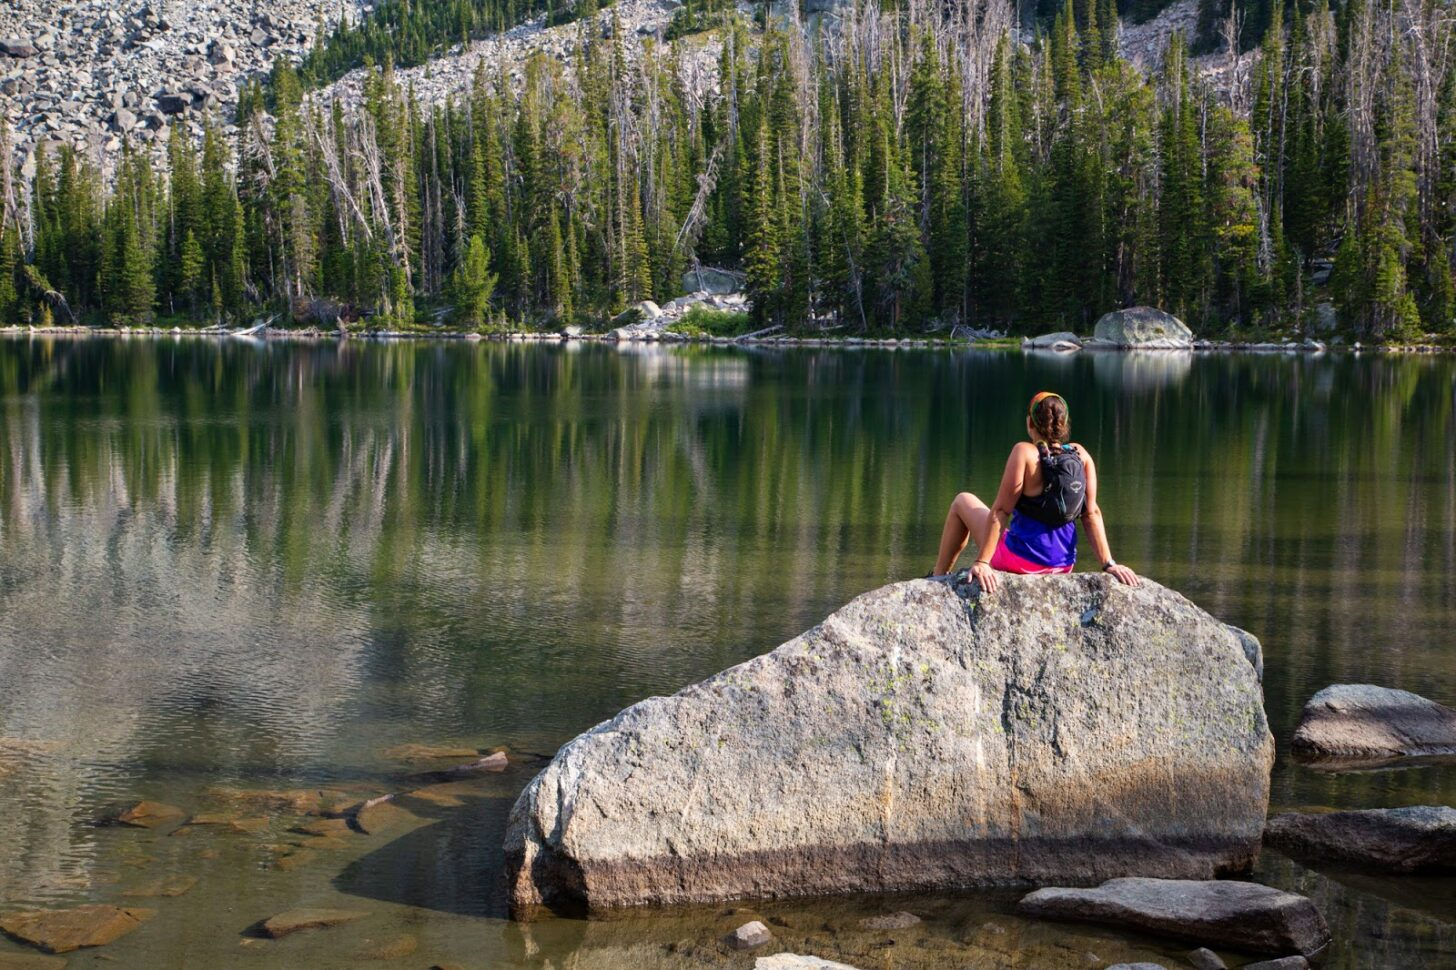 A woman sits on a boulder at the shores of an alpine lake, looking across the water.